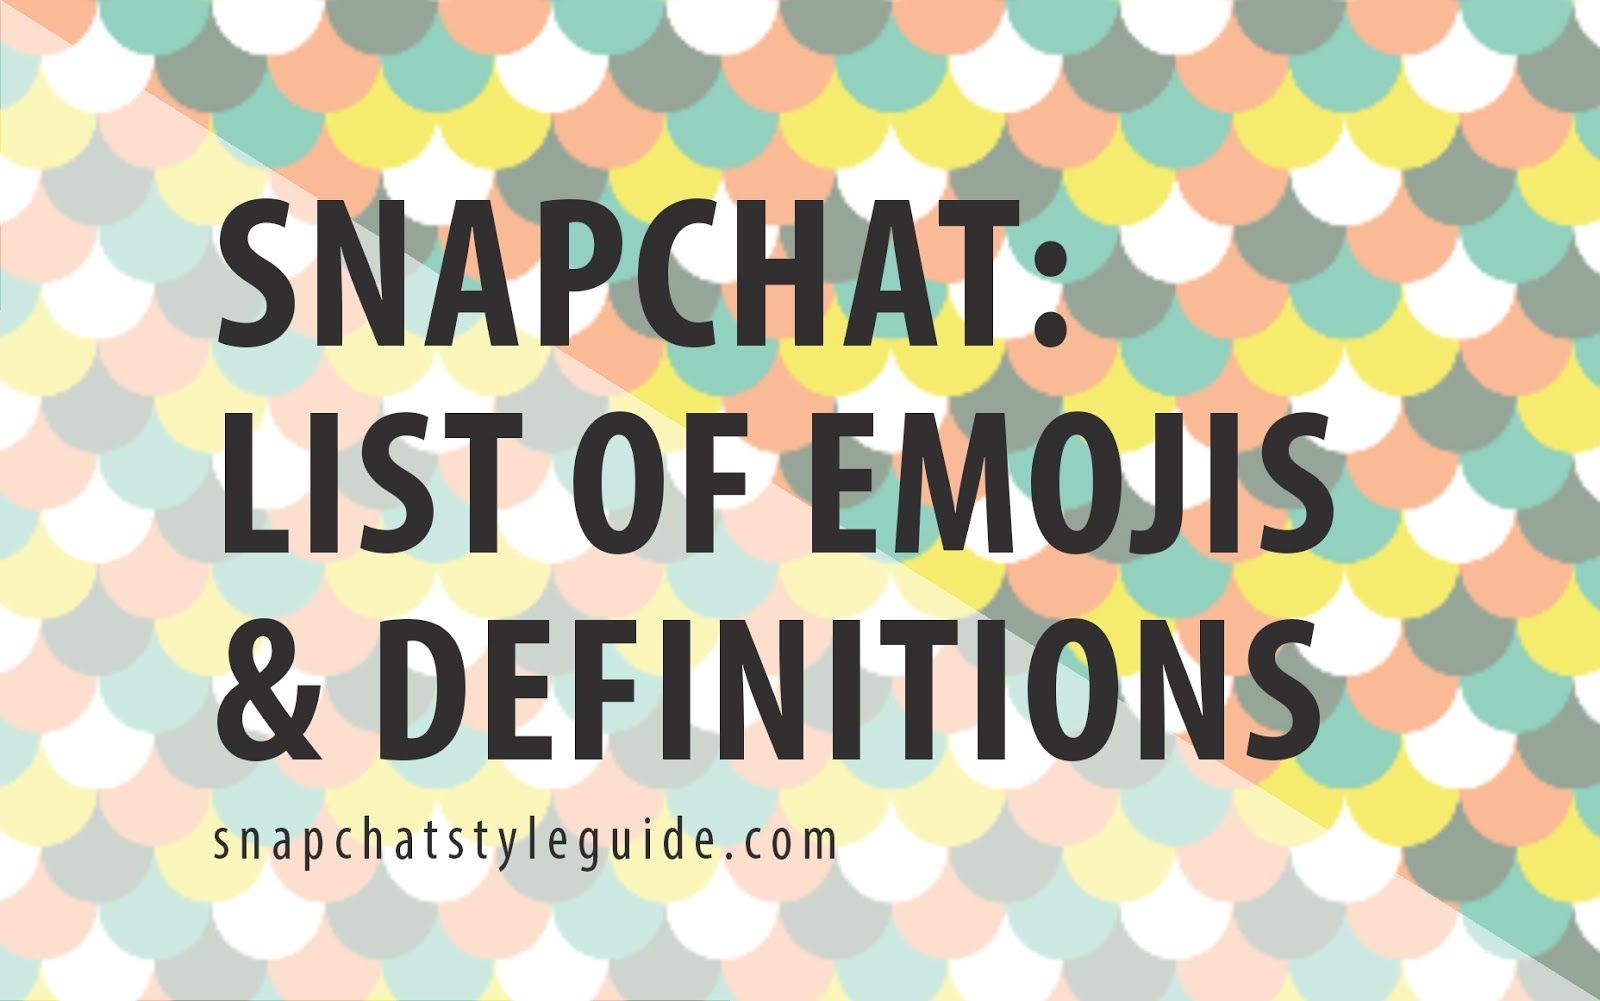 Snapchat news list of emojis and definitions snapchat style guide you may have seen a new emoji appearing with the snapchat march 2016 update an hourglass what does this mean and why do you care buycottarizona